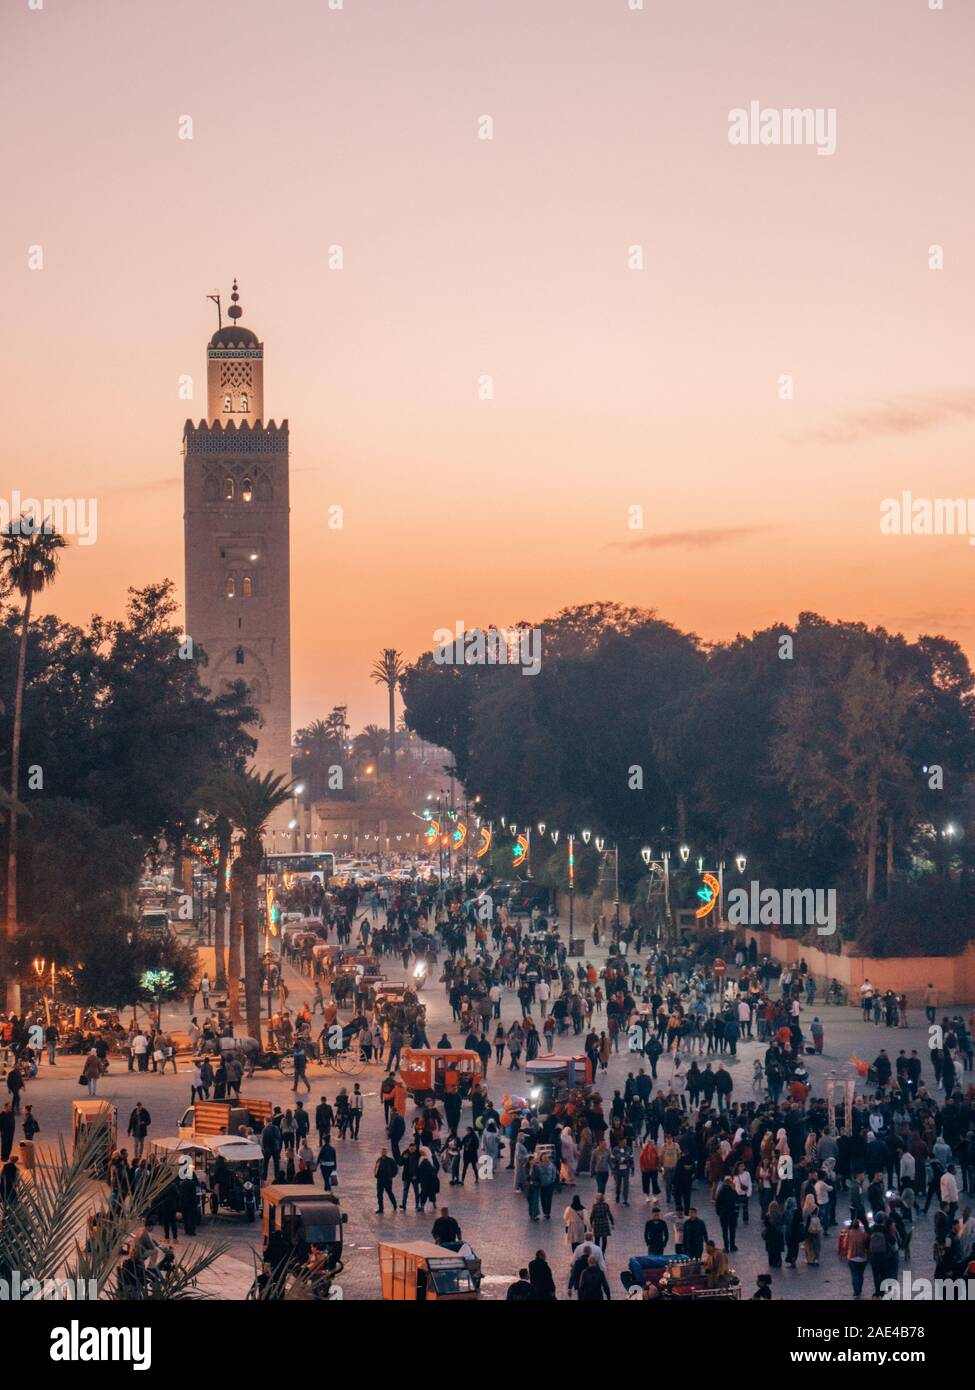 Djemaa el Fna main market place in Marrakech, Morocco while sunset Stock Photo